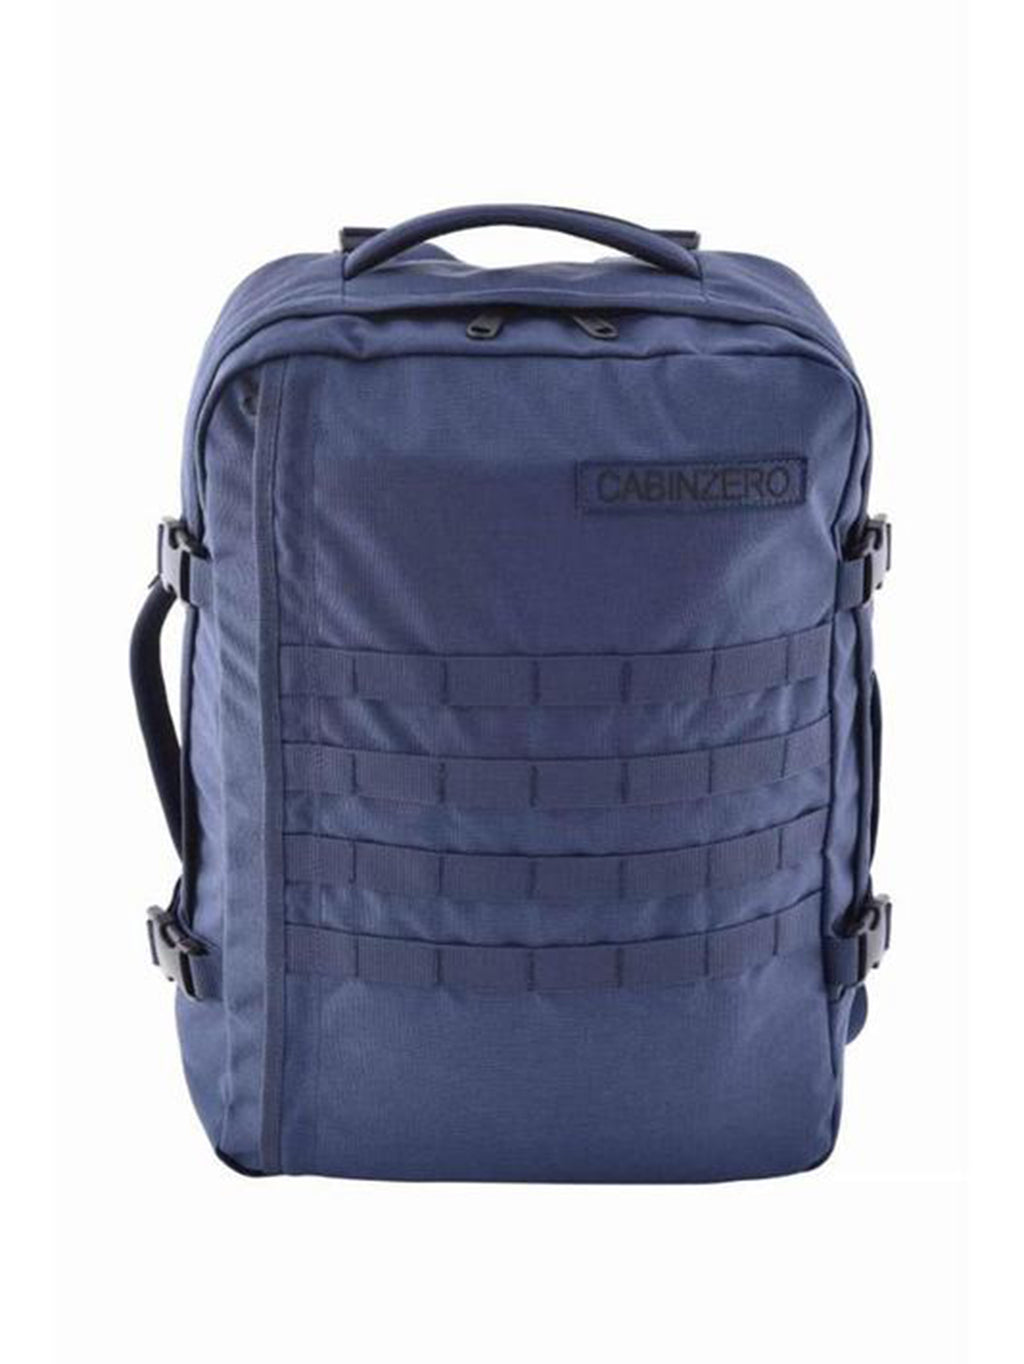 Cabinzero Military 36L in Navy Color - This Is For Him